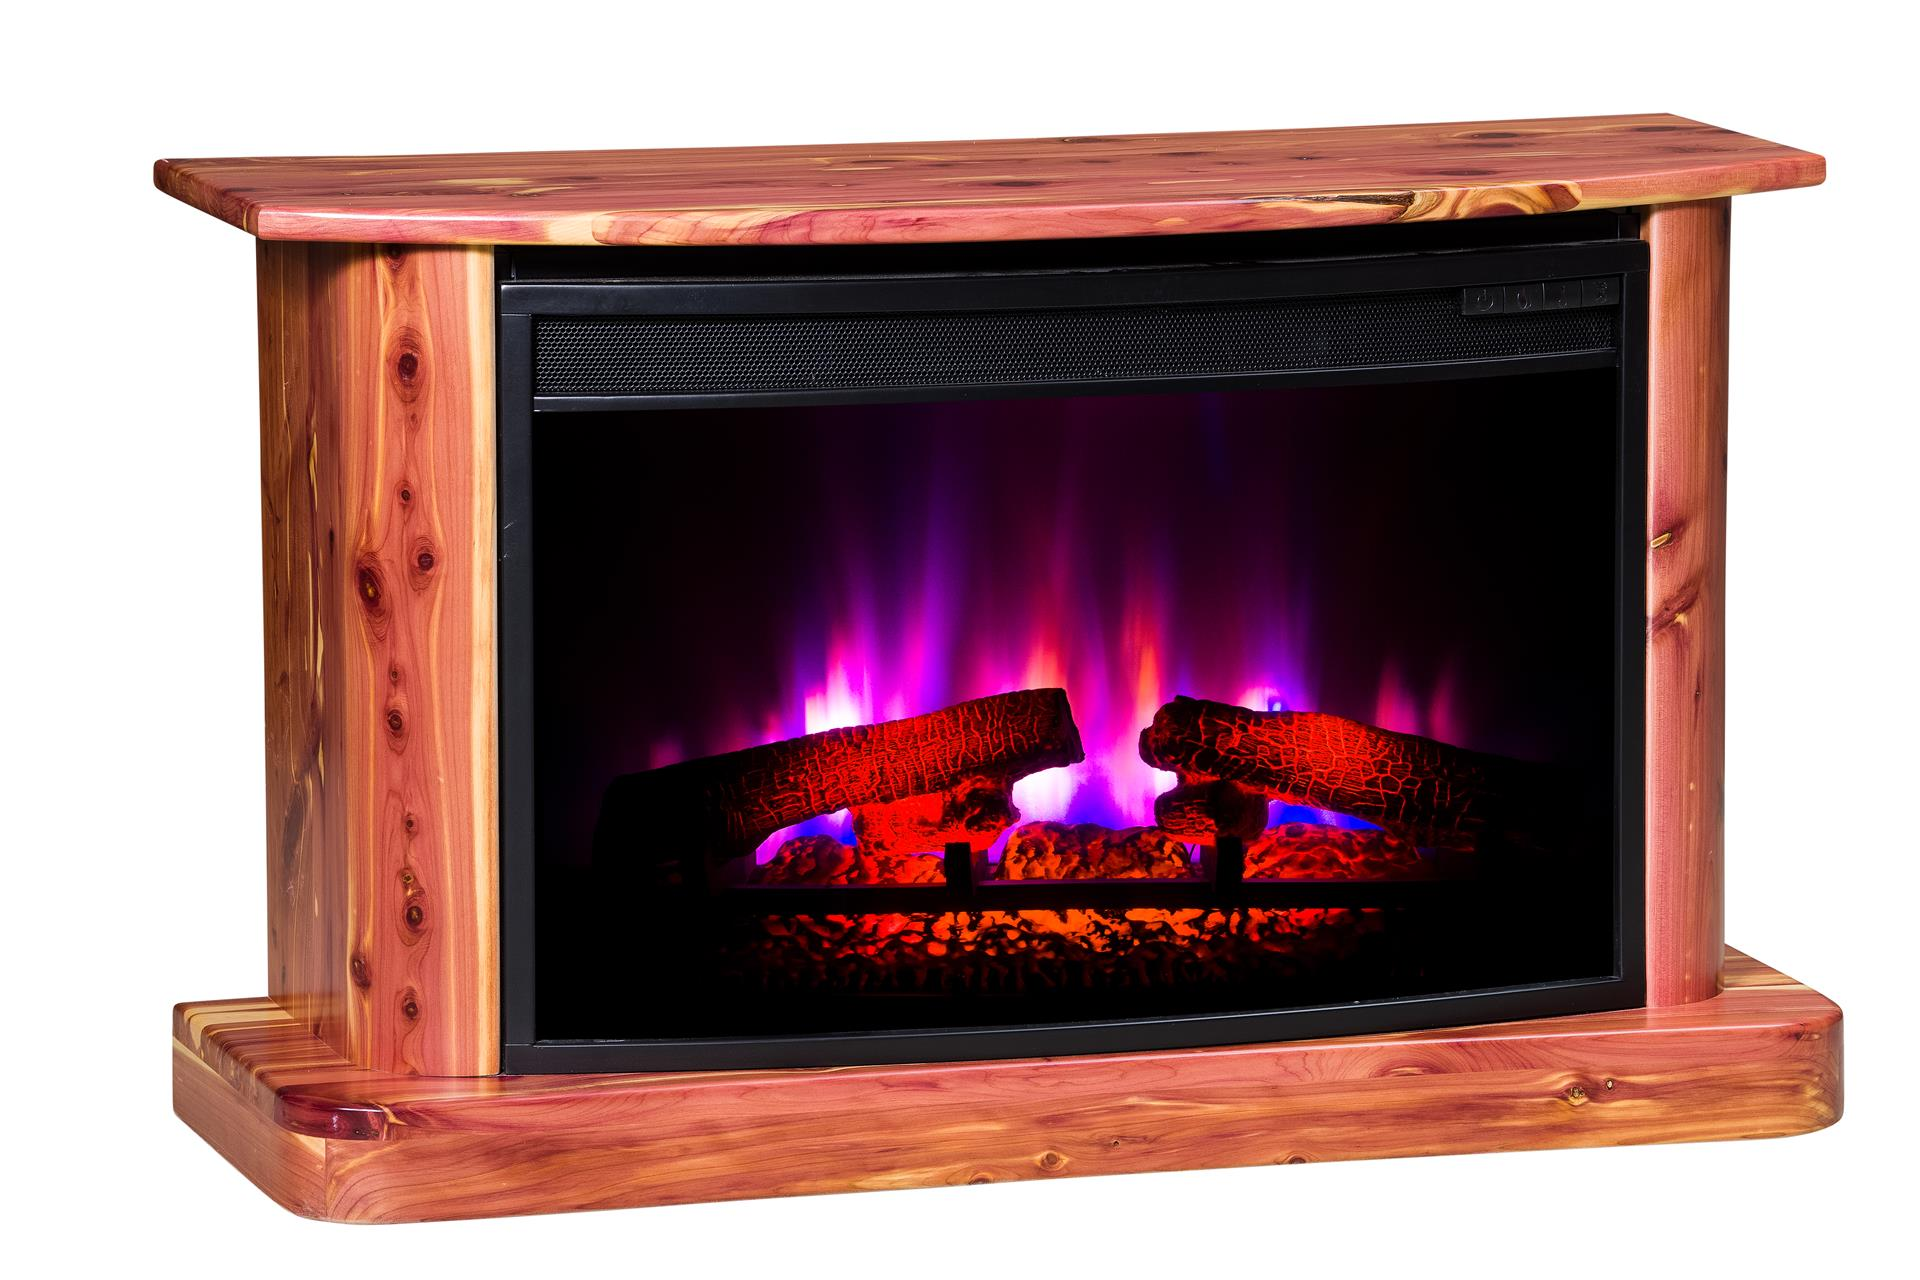 Outstanding Rustic Cedar Electric Fireplace From Dutchcrafters Amish Interior Design Ideas Inesswwsoteloinfo